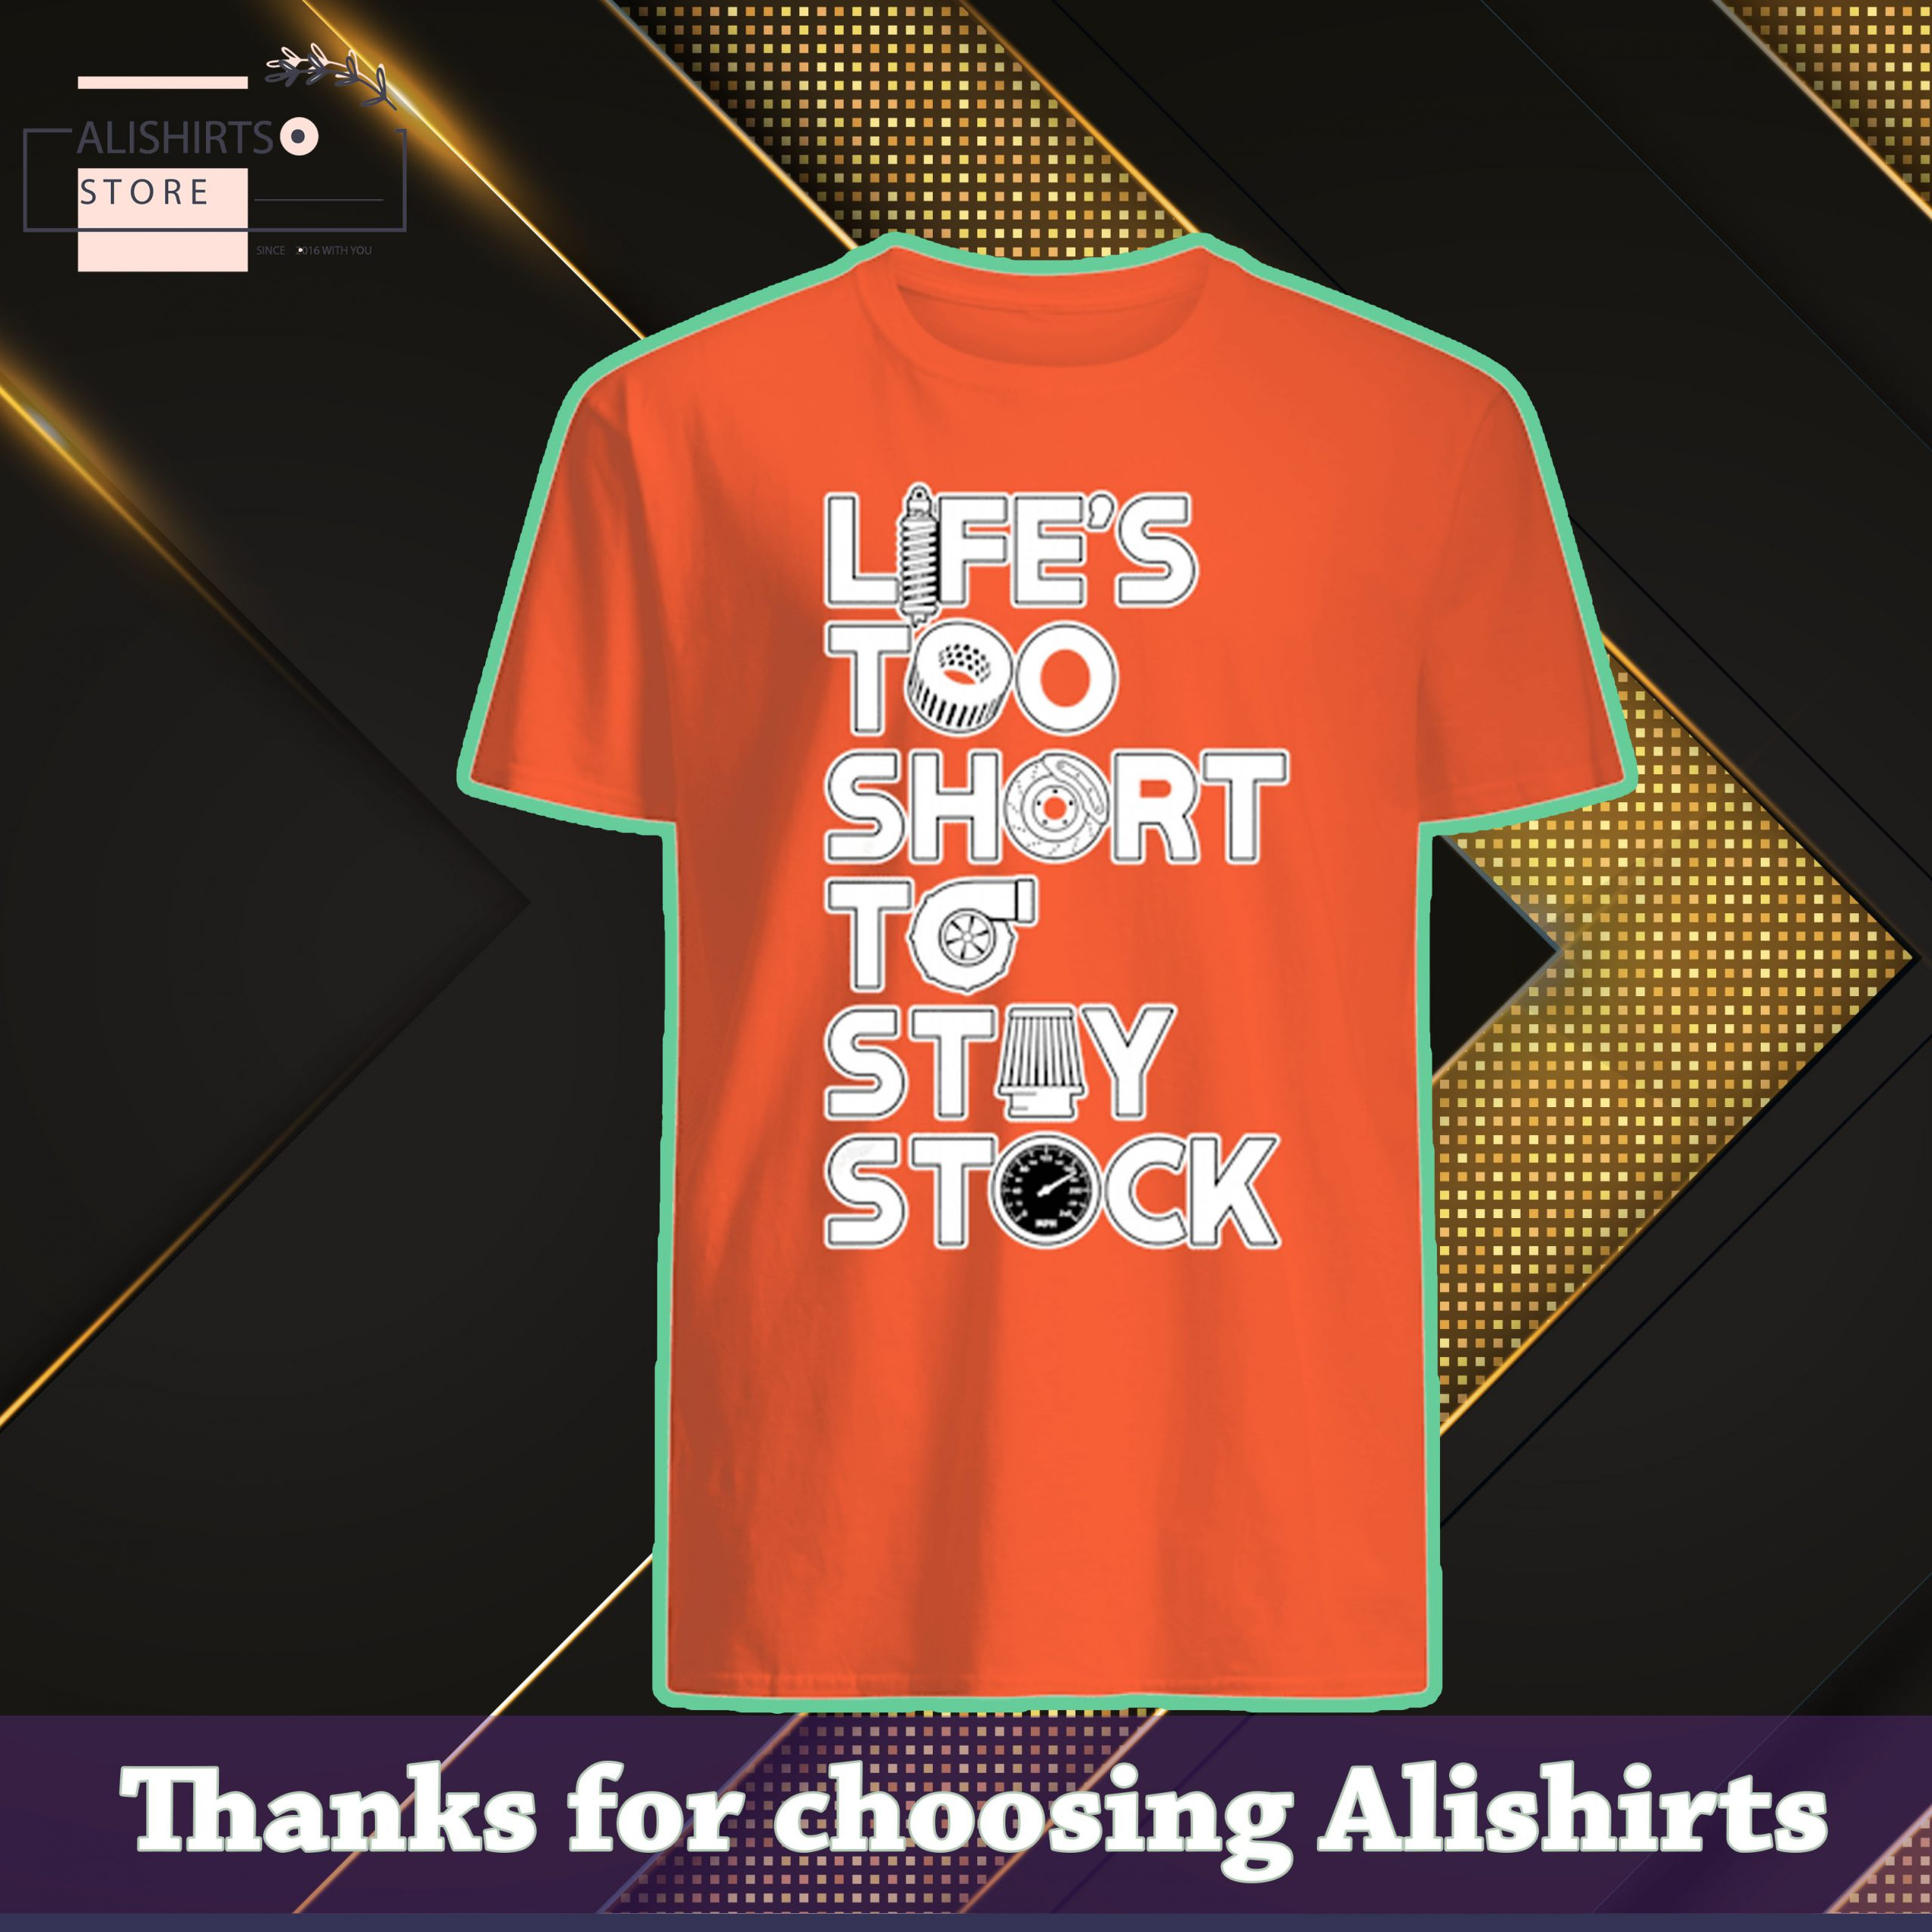 Lifes too short to stay stock shirt